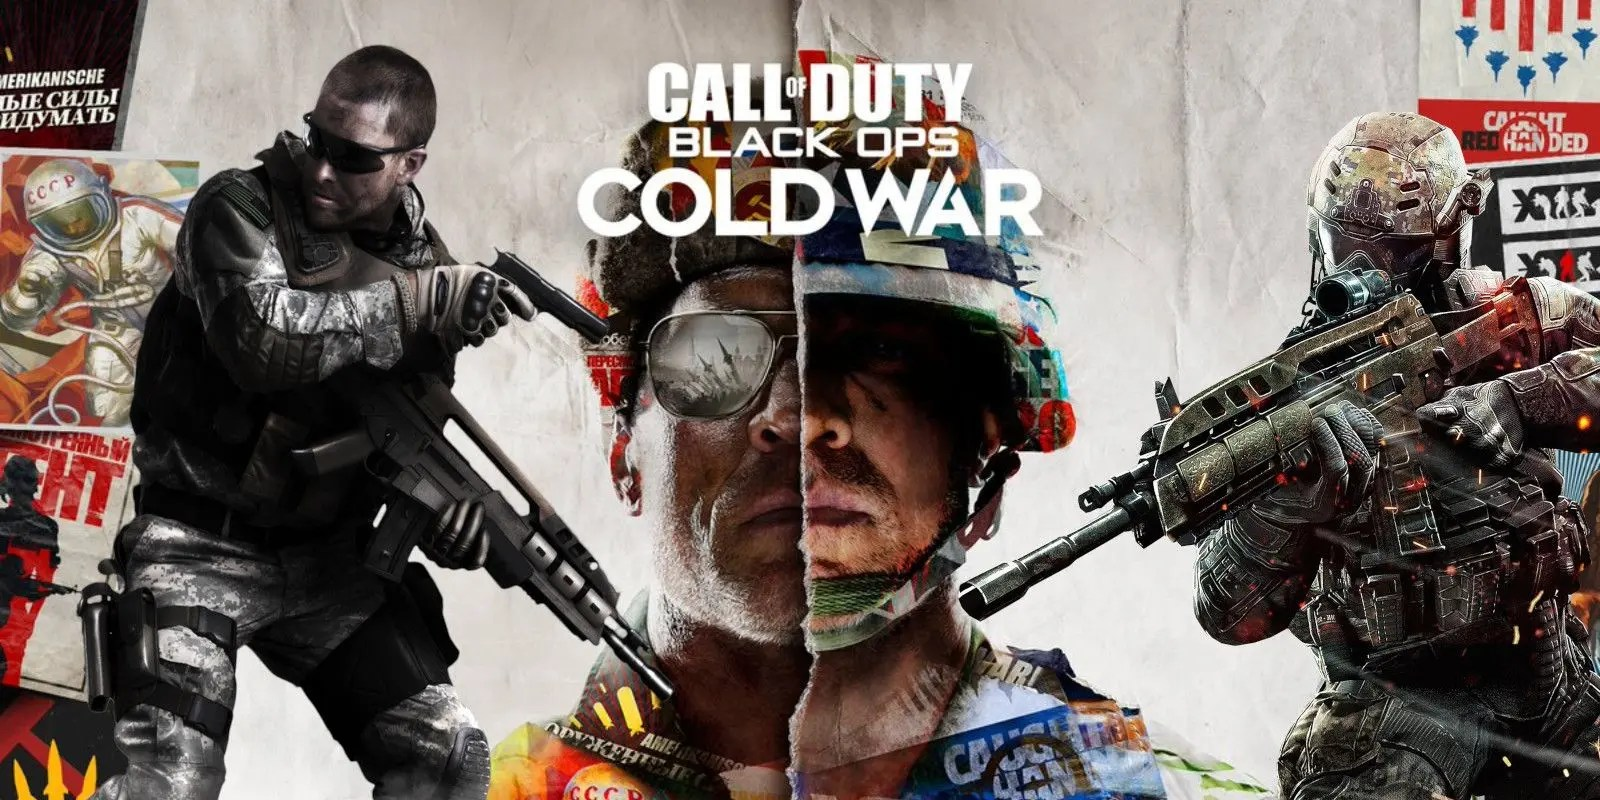 Estas son las especificaciones de Call of Duty: Black Ops Cold War para PC  - PlayDepot